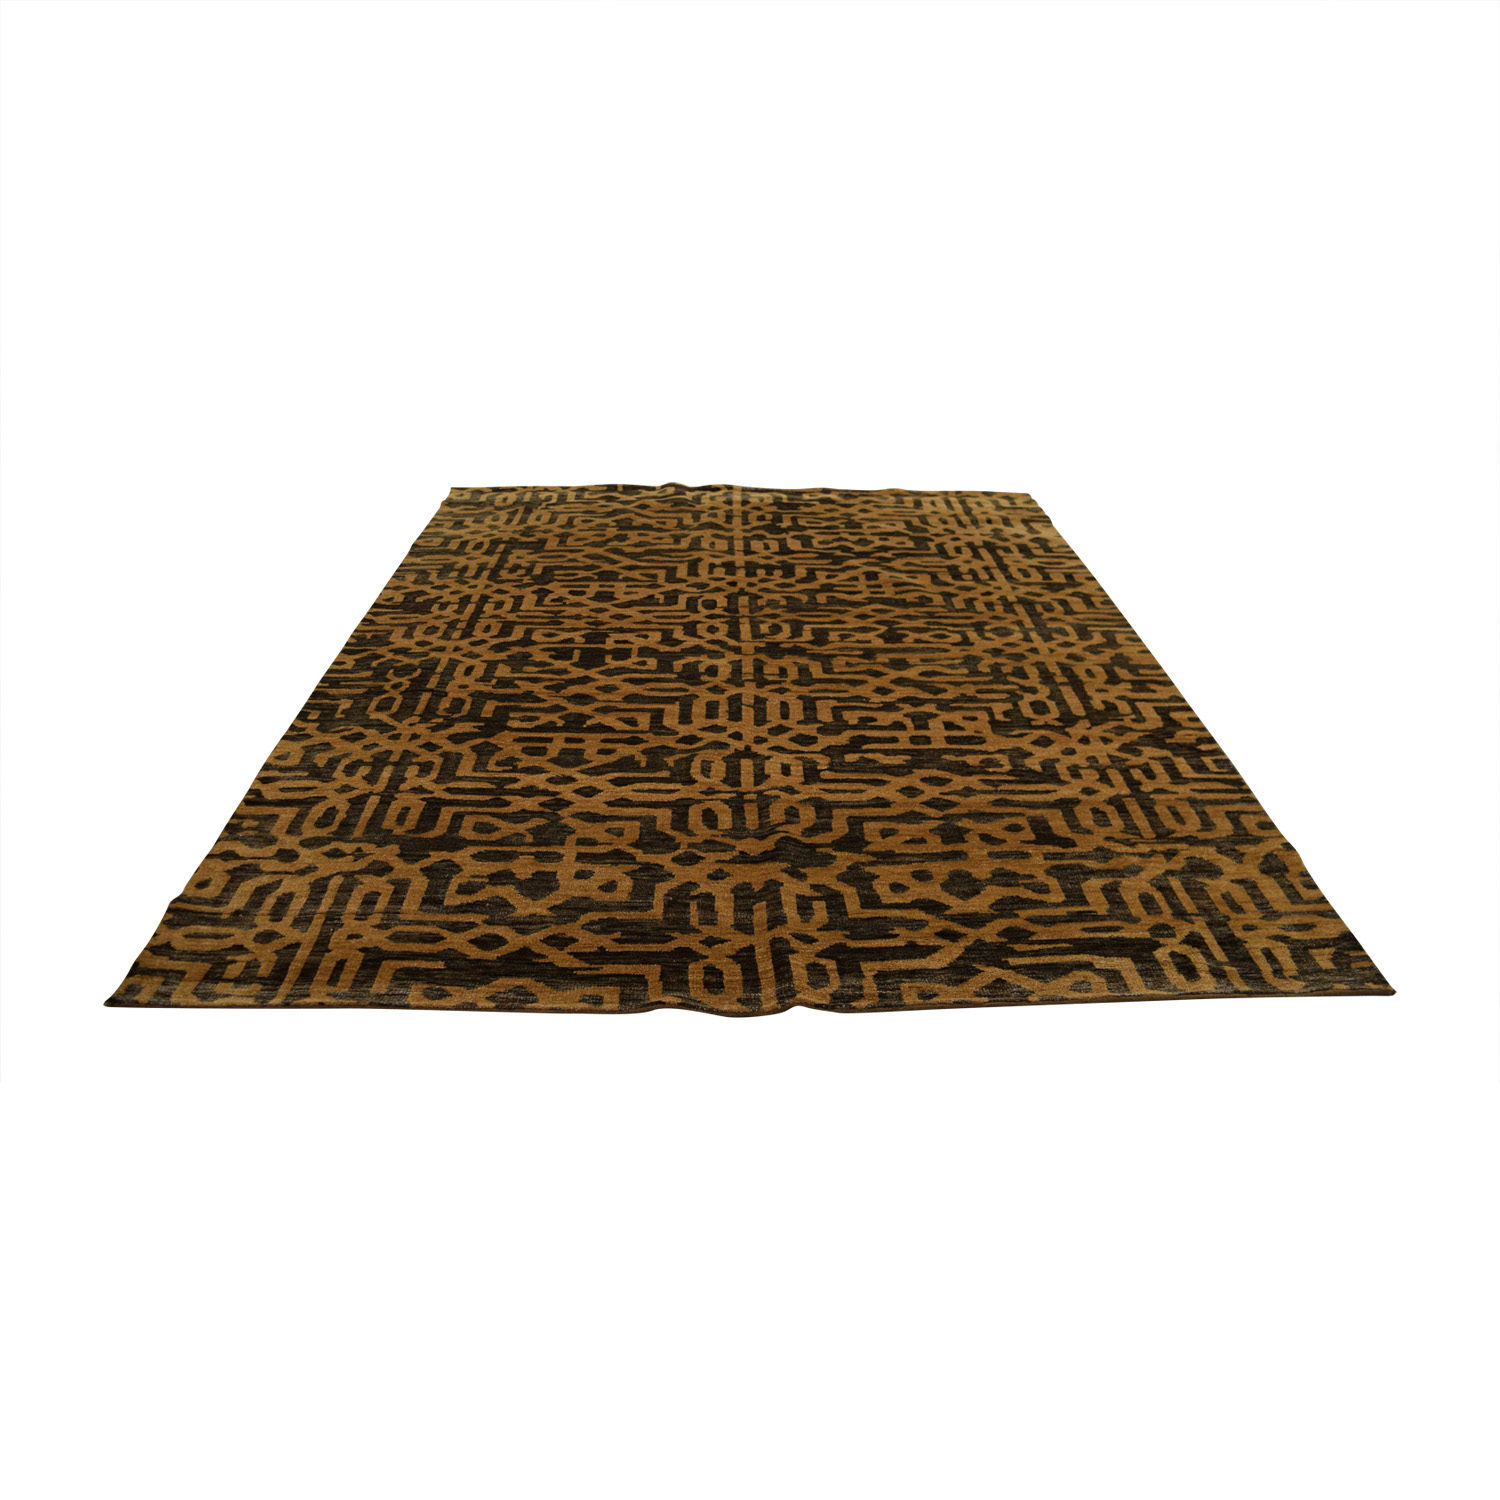 Obeetee Brown Tan Rug / Decor